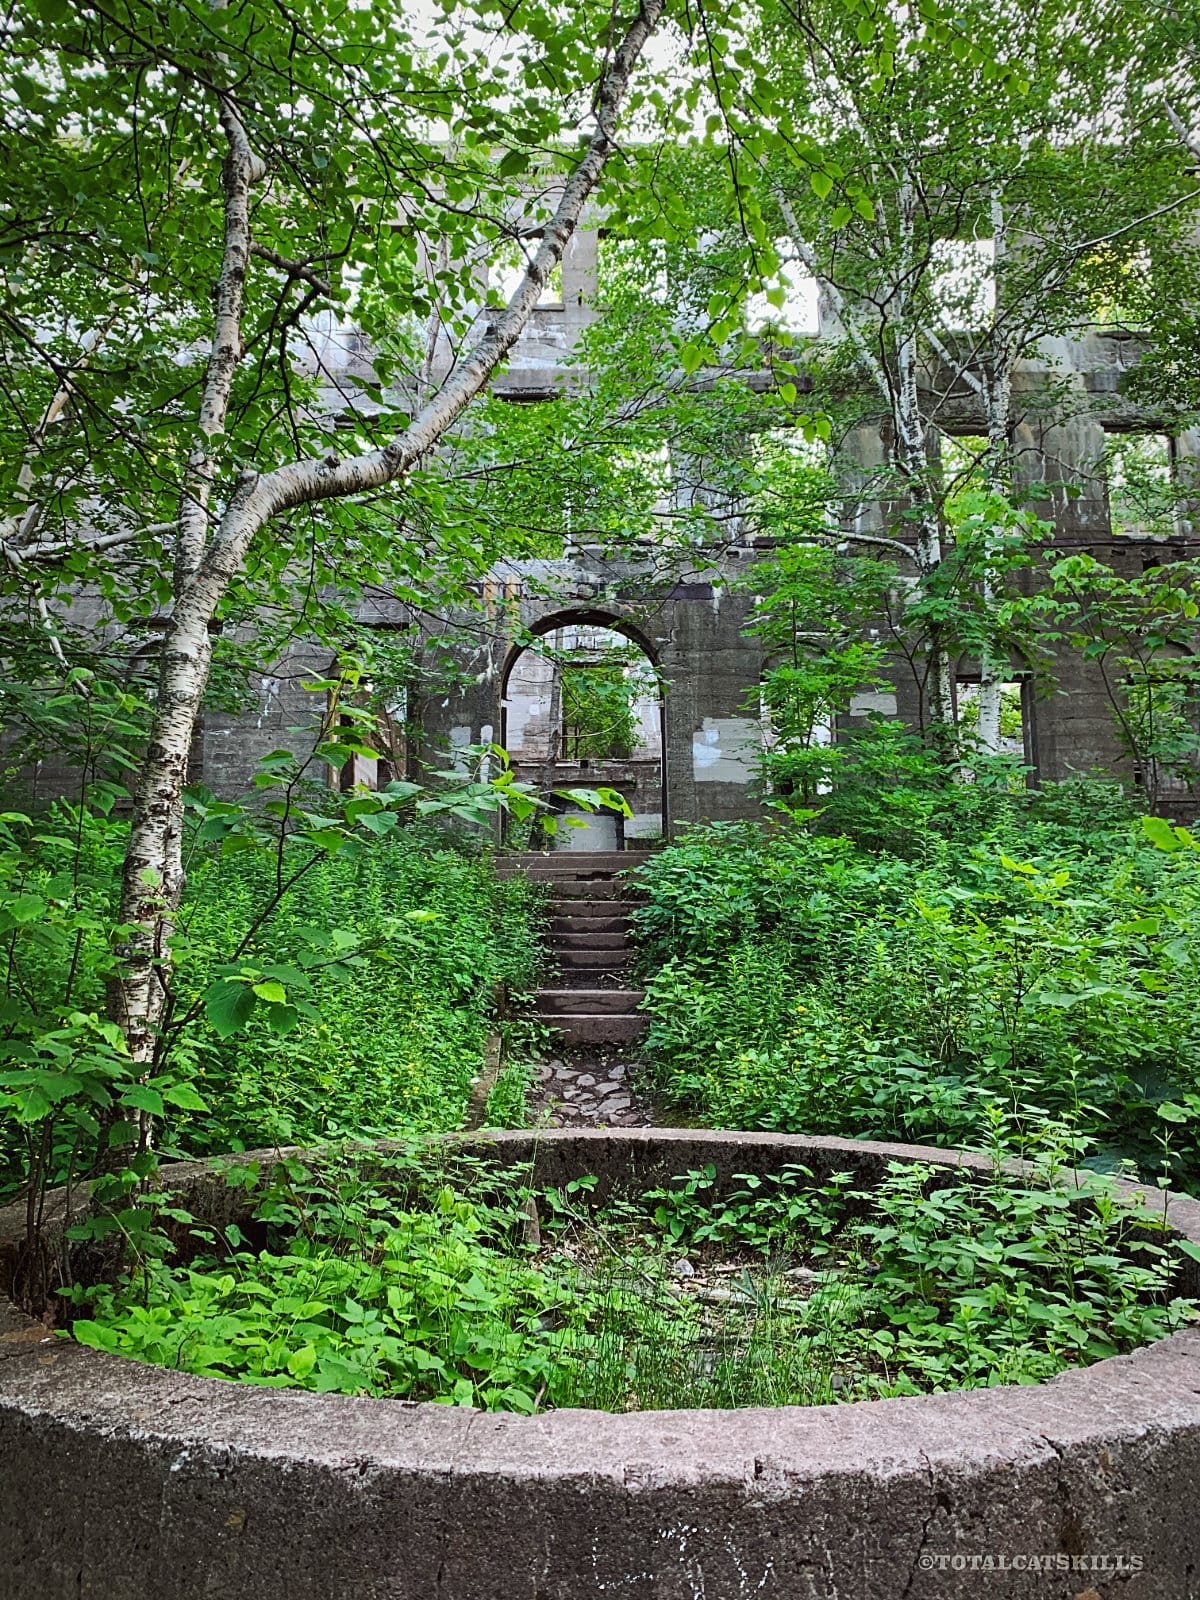 overlook mountain trail / courtyard ruins in woods